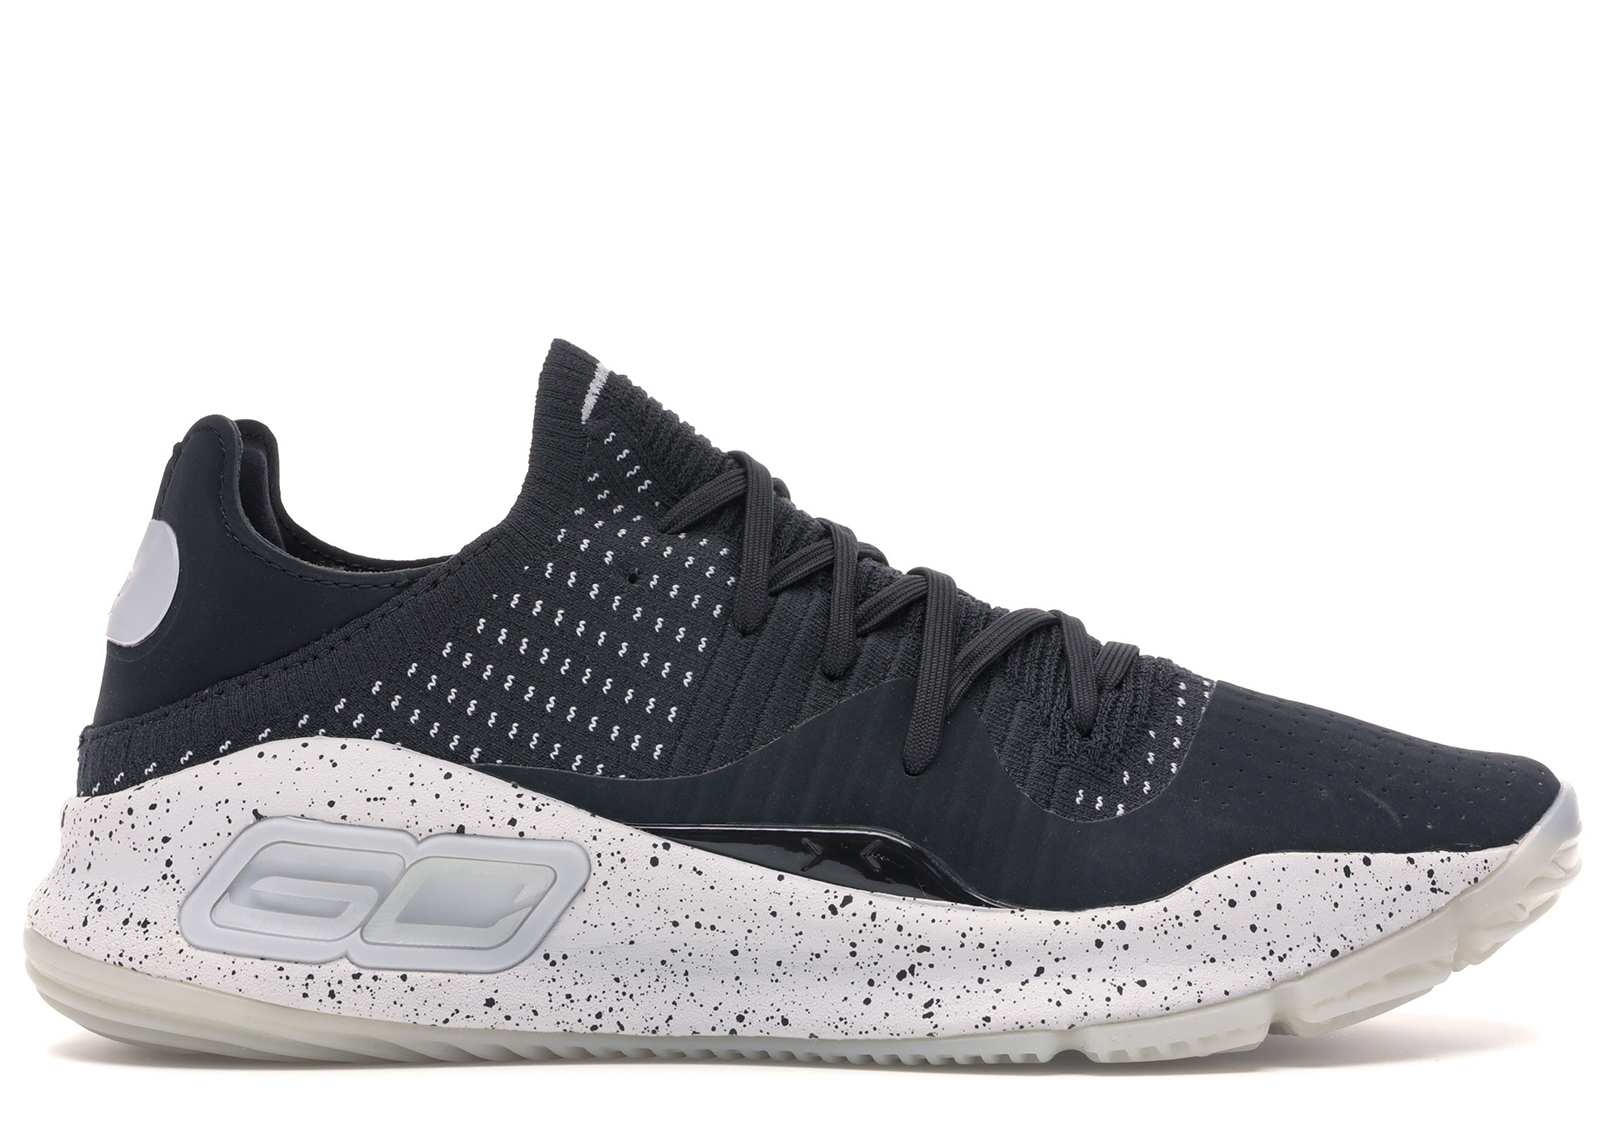 curry 4 low black and white